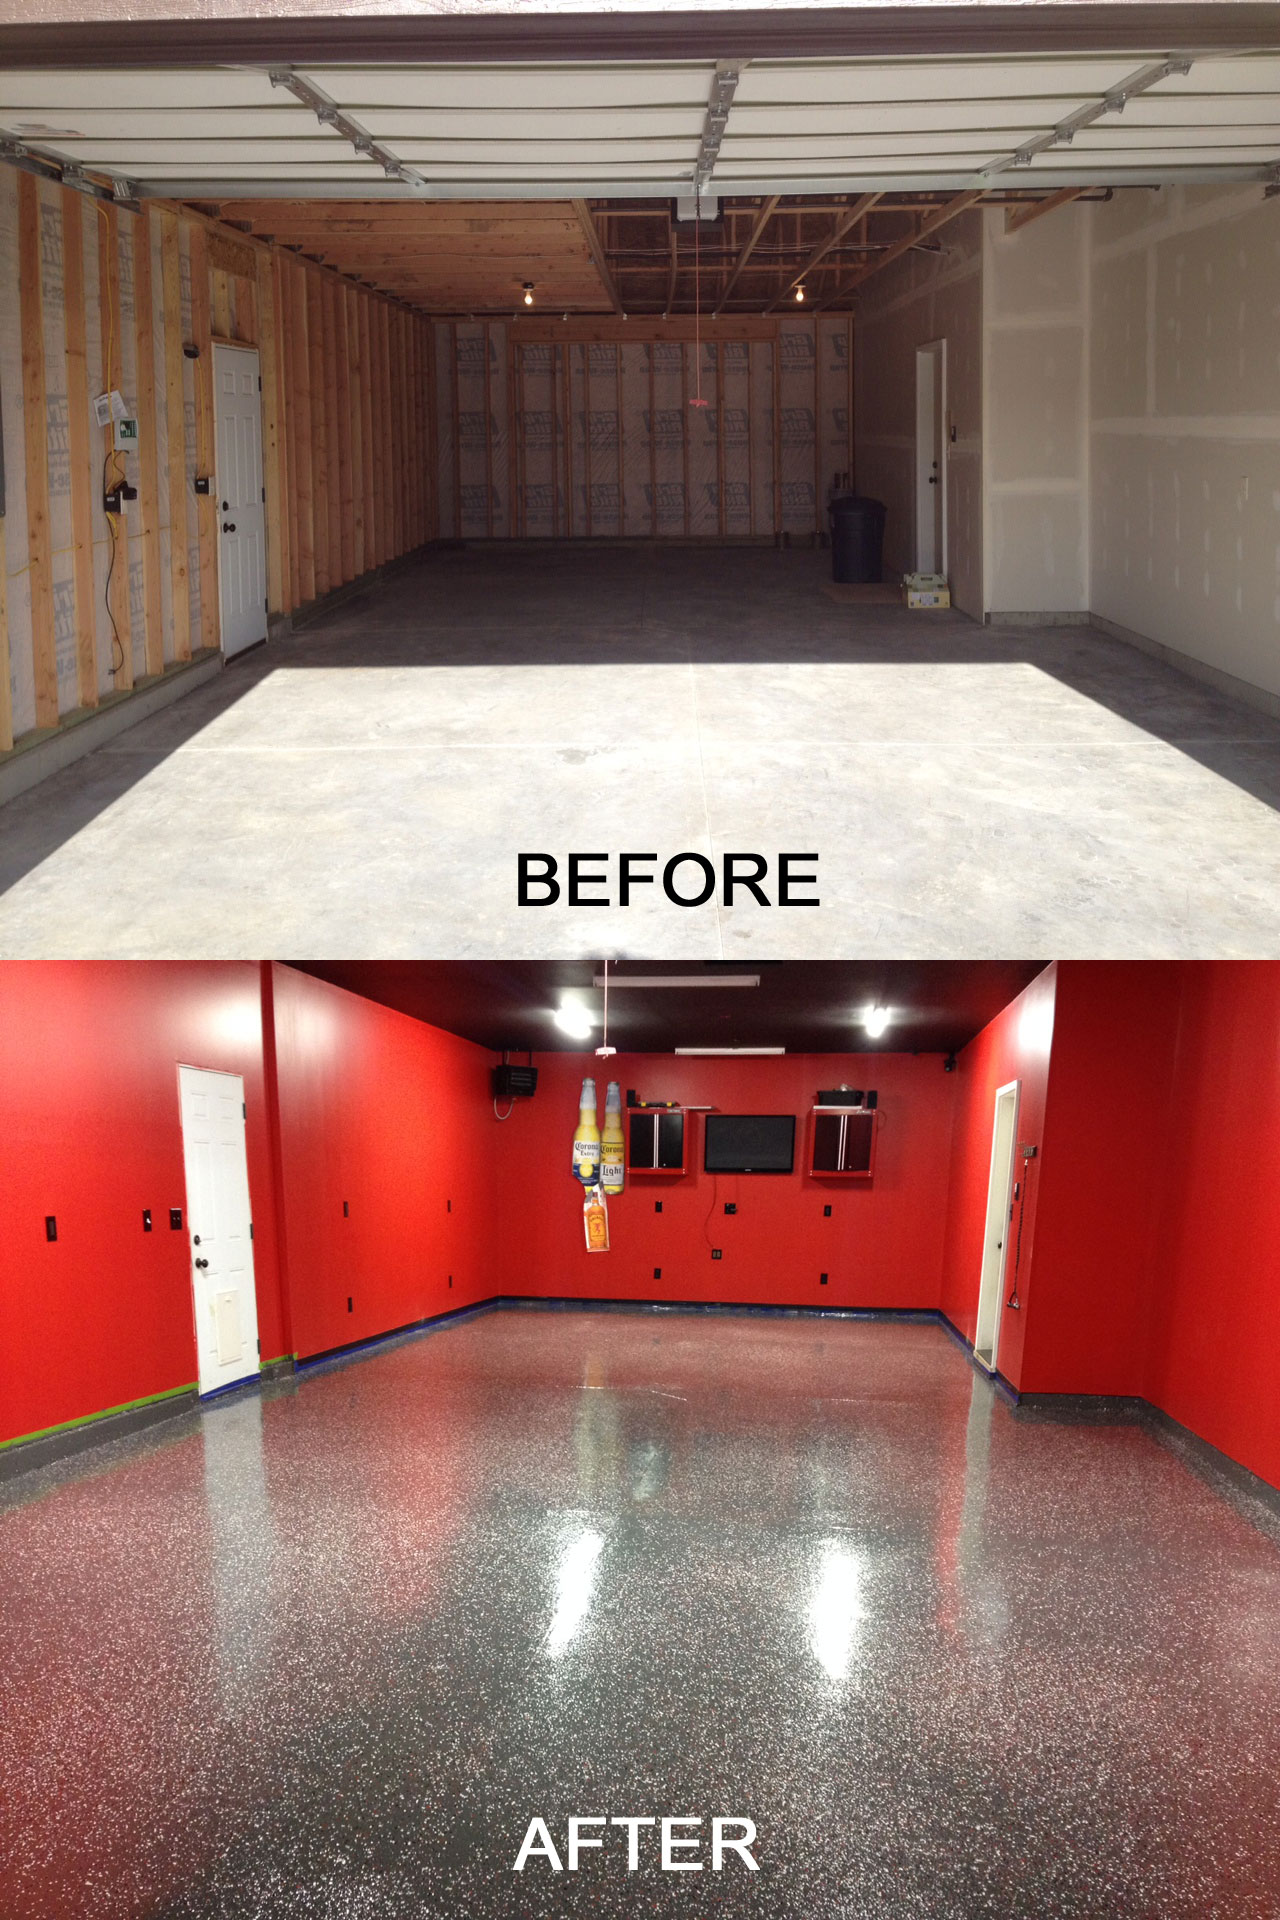 Garage Floor Paint In Basement Garage Floor Paint Epoxy Coating Epoxy Paint Color Chips